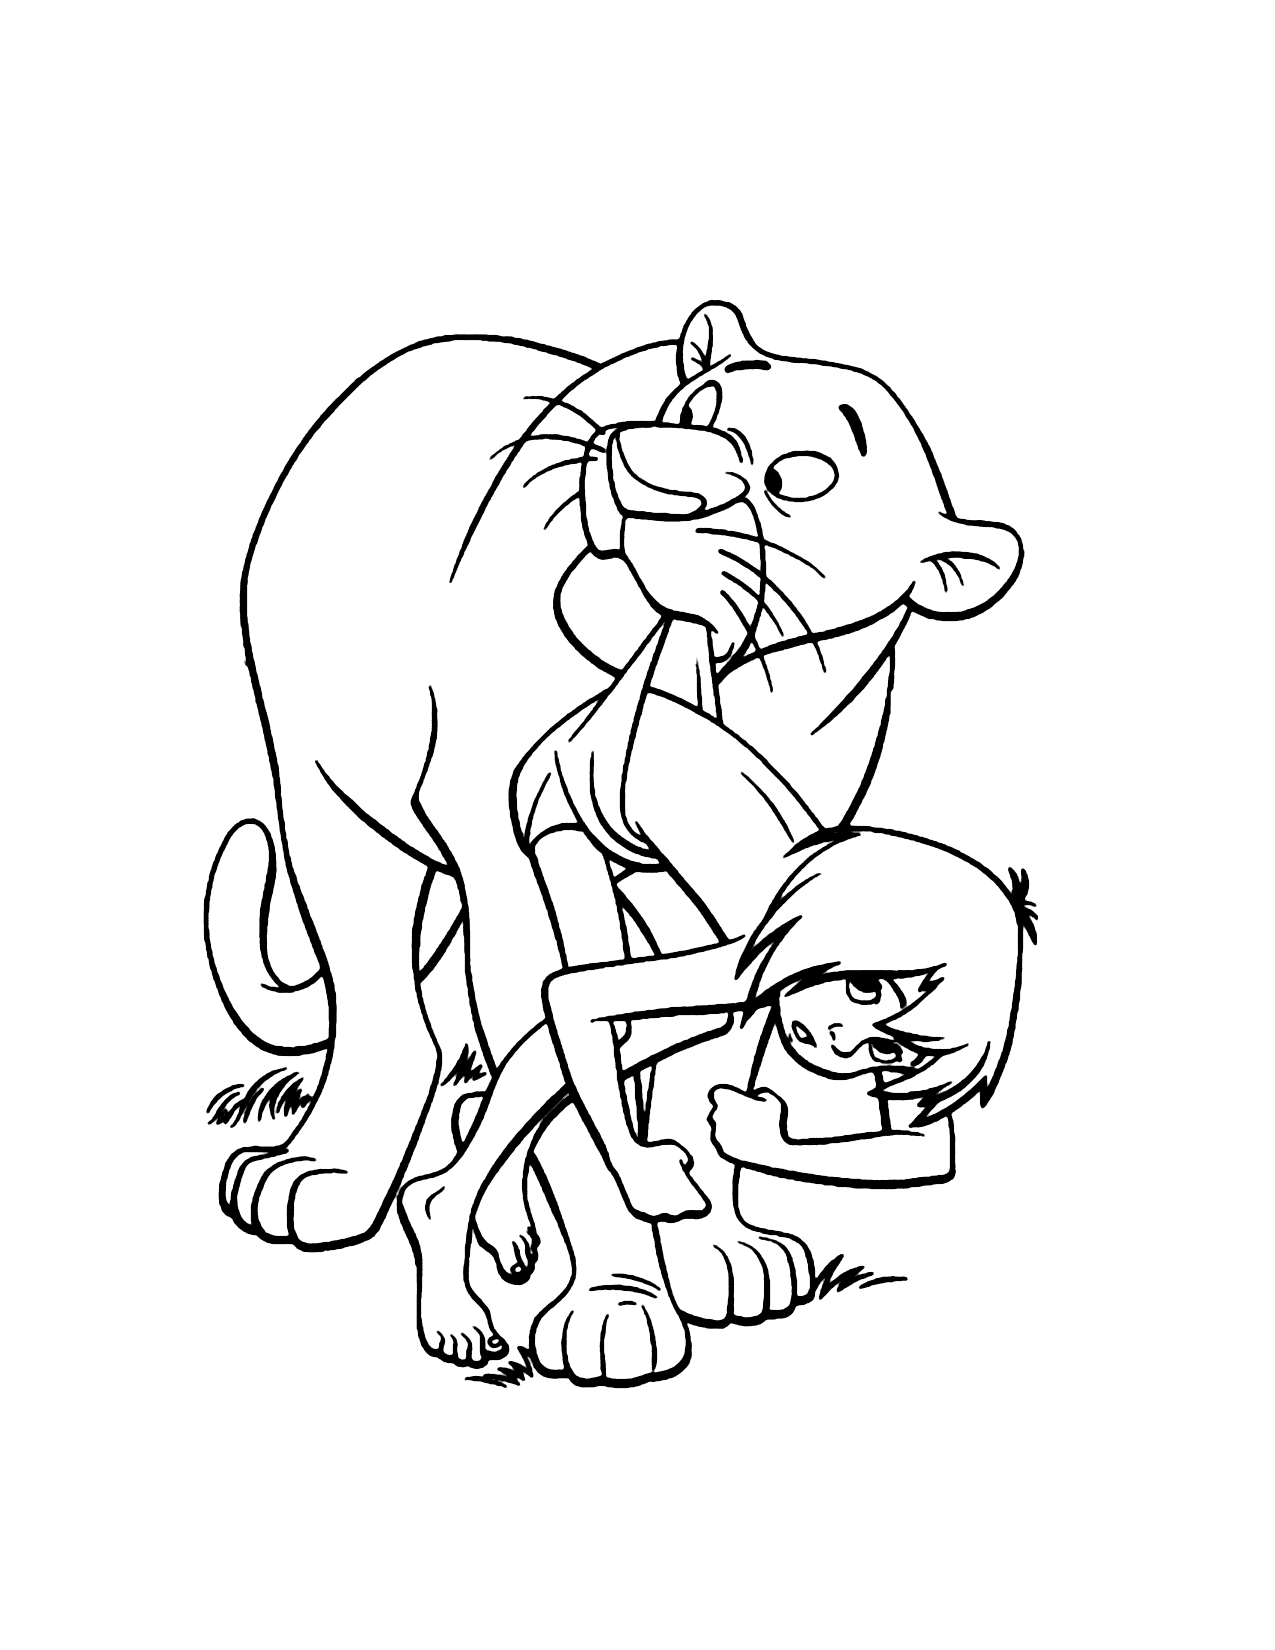 Bagheera Protects Mowgli Jungle Book Coloring Page